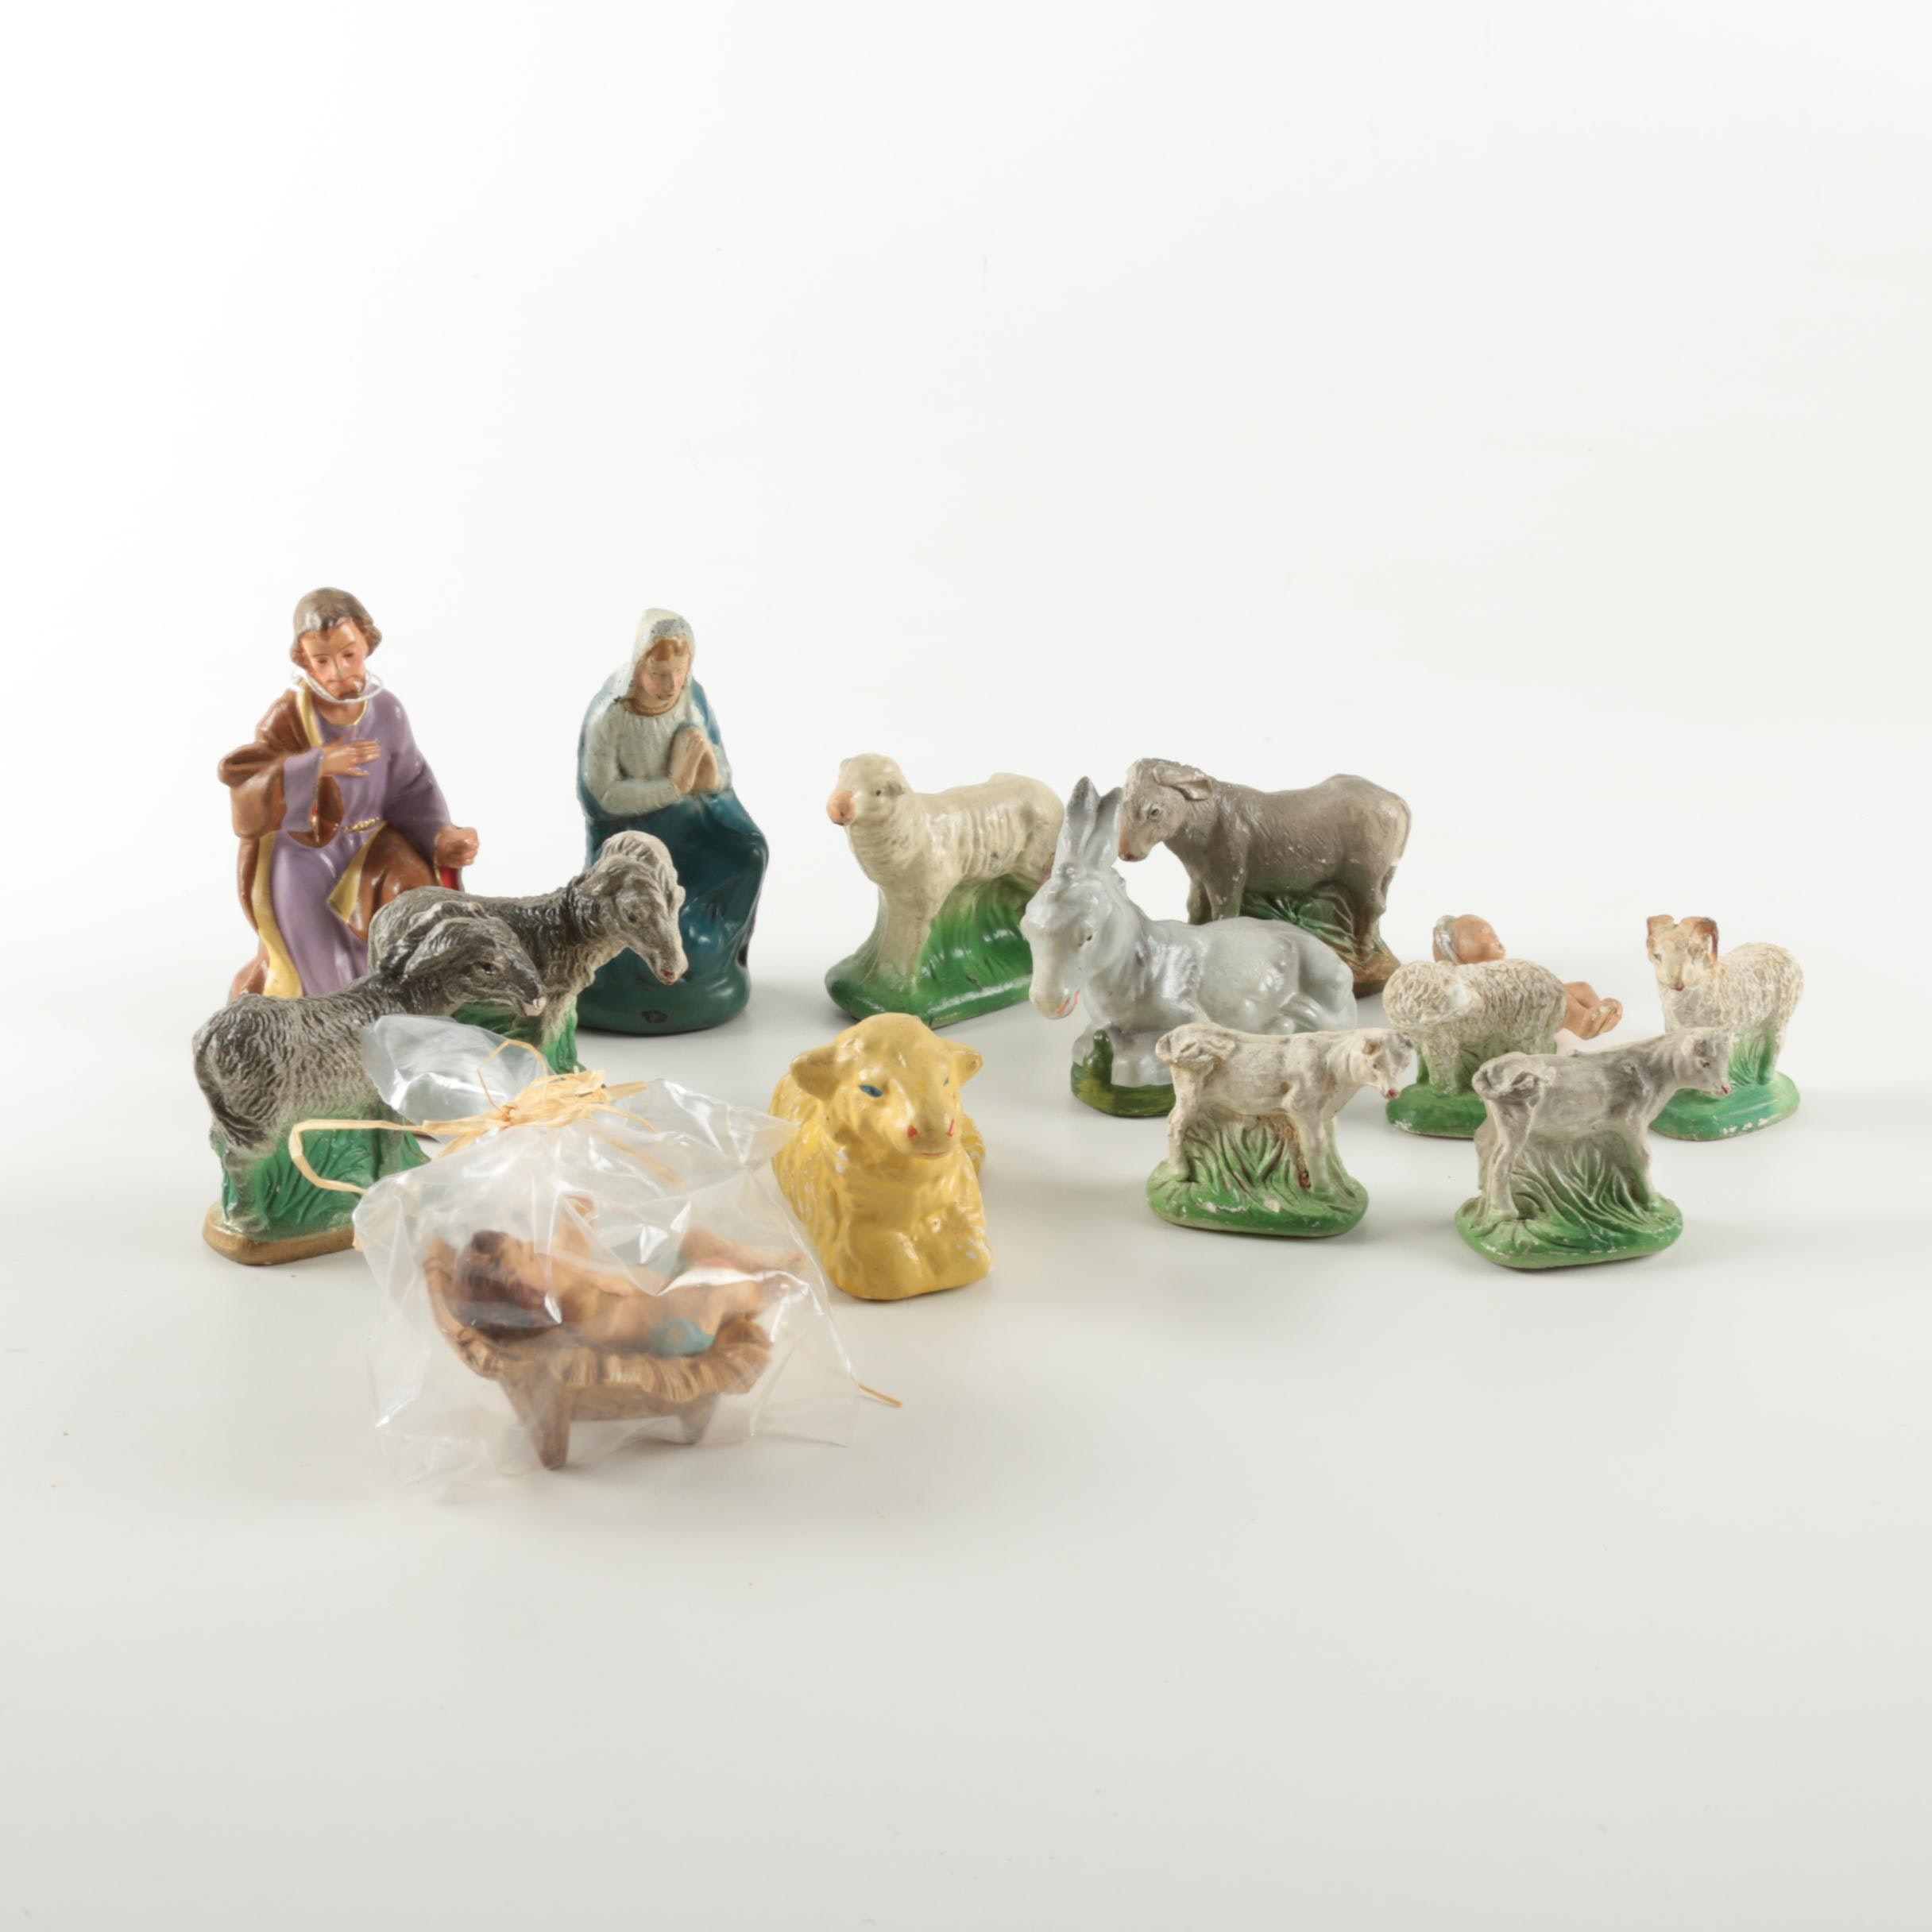 Ceramic Christmas Nativity Figurines